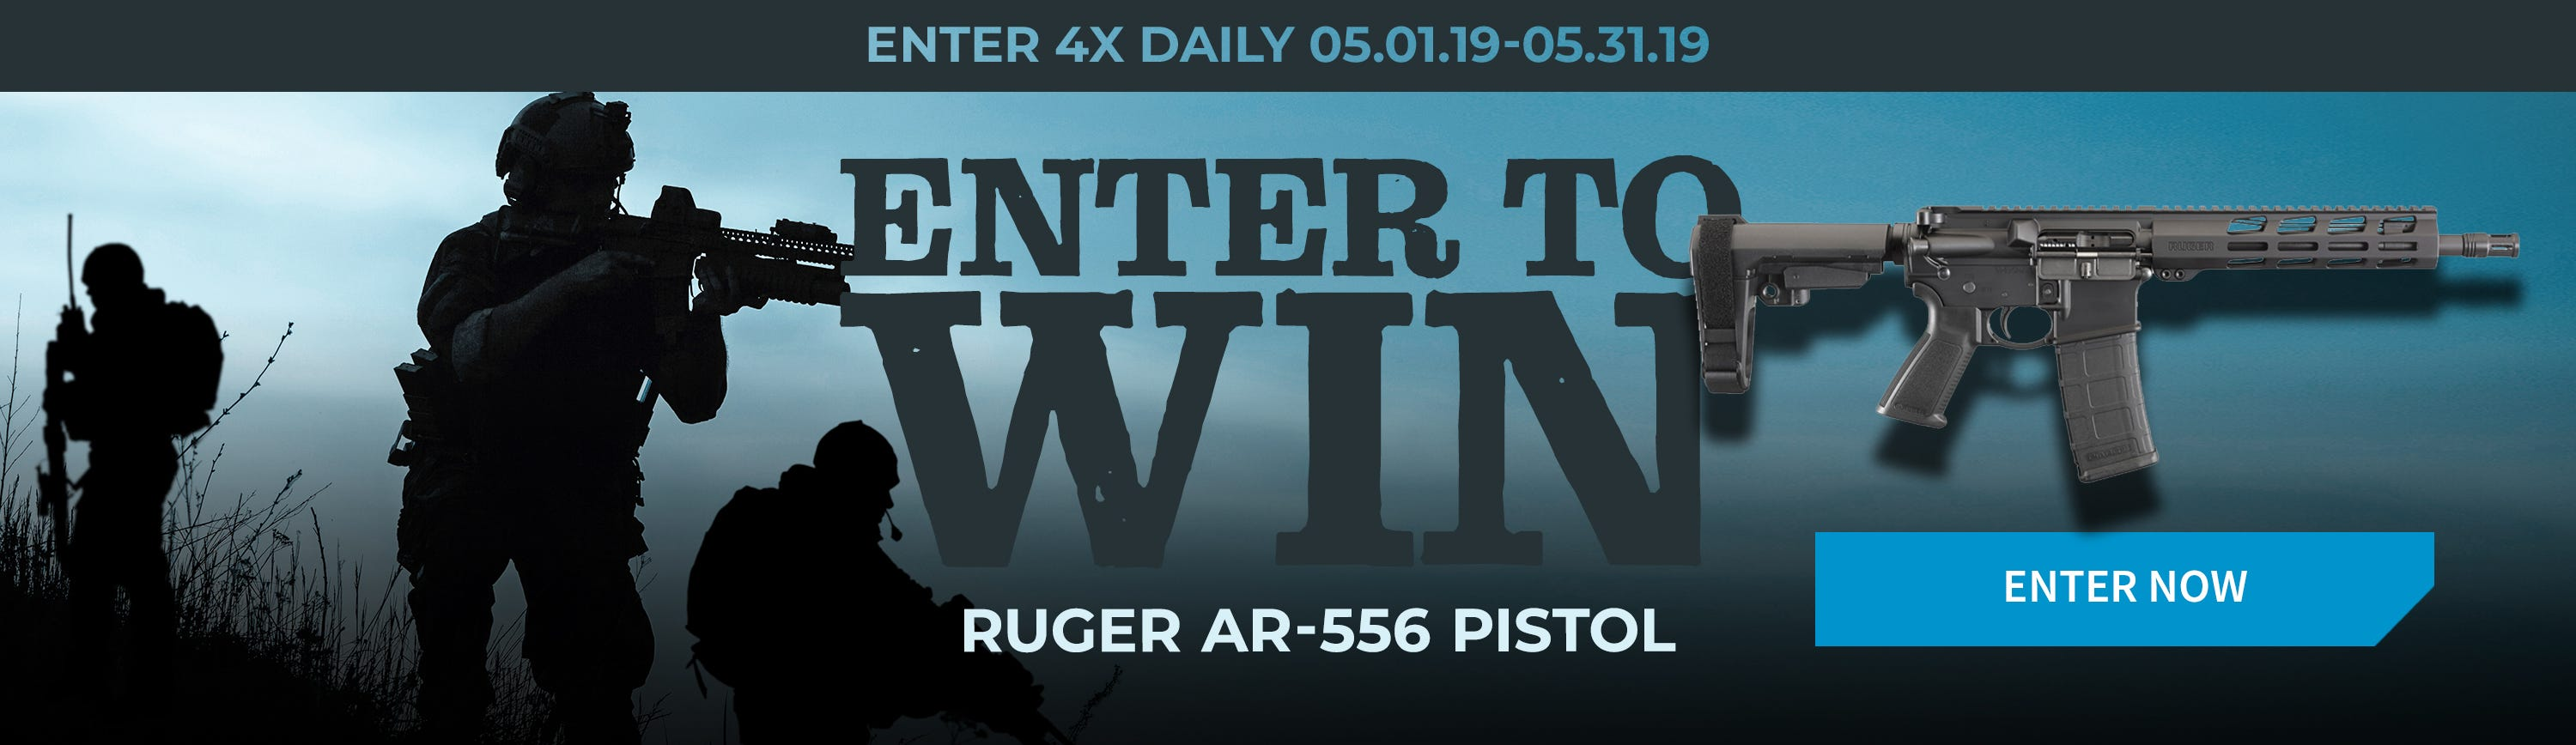 GrabAGun Monthly Giveaway - Win a Ruger AR-556 Pistol